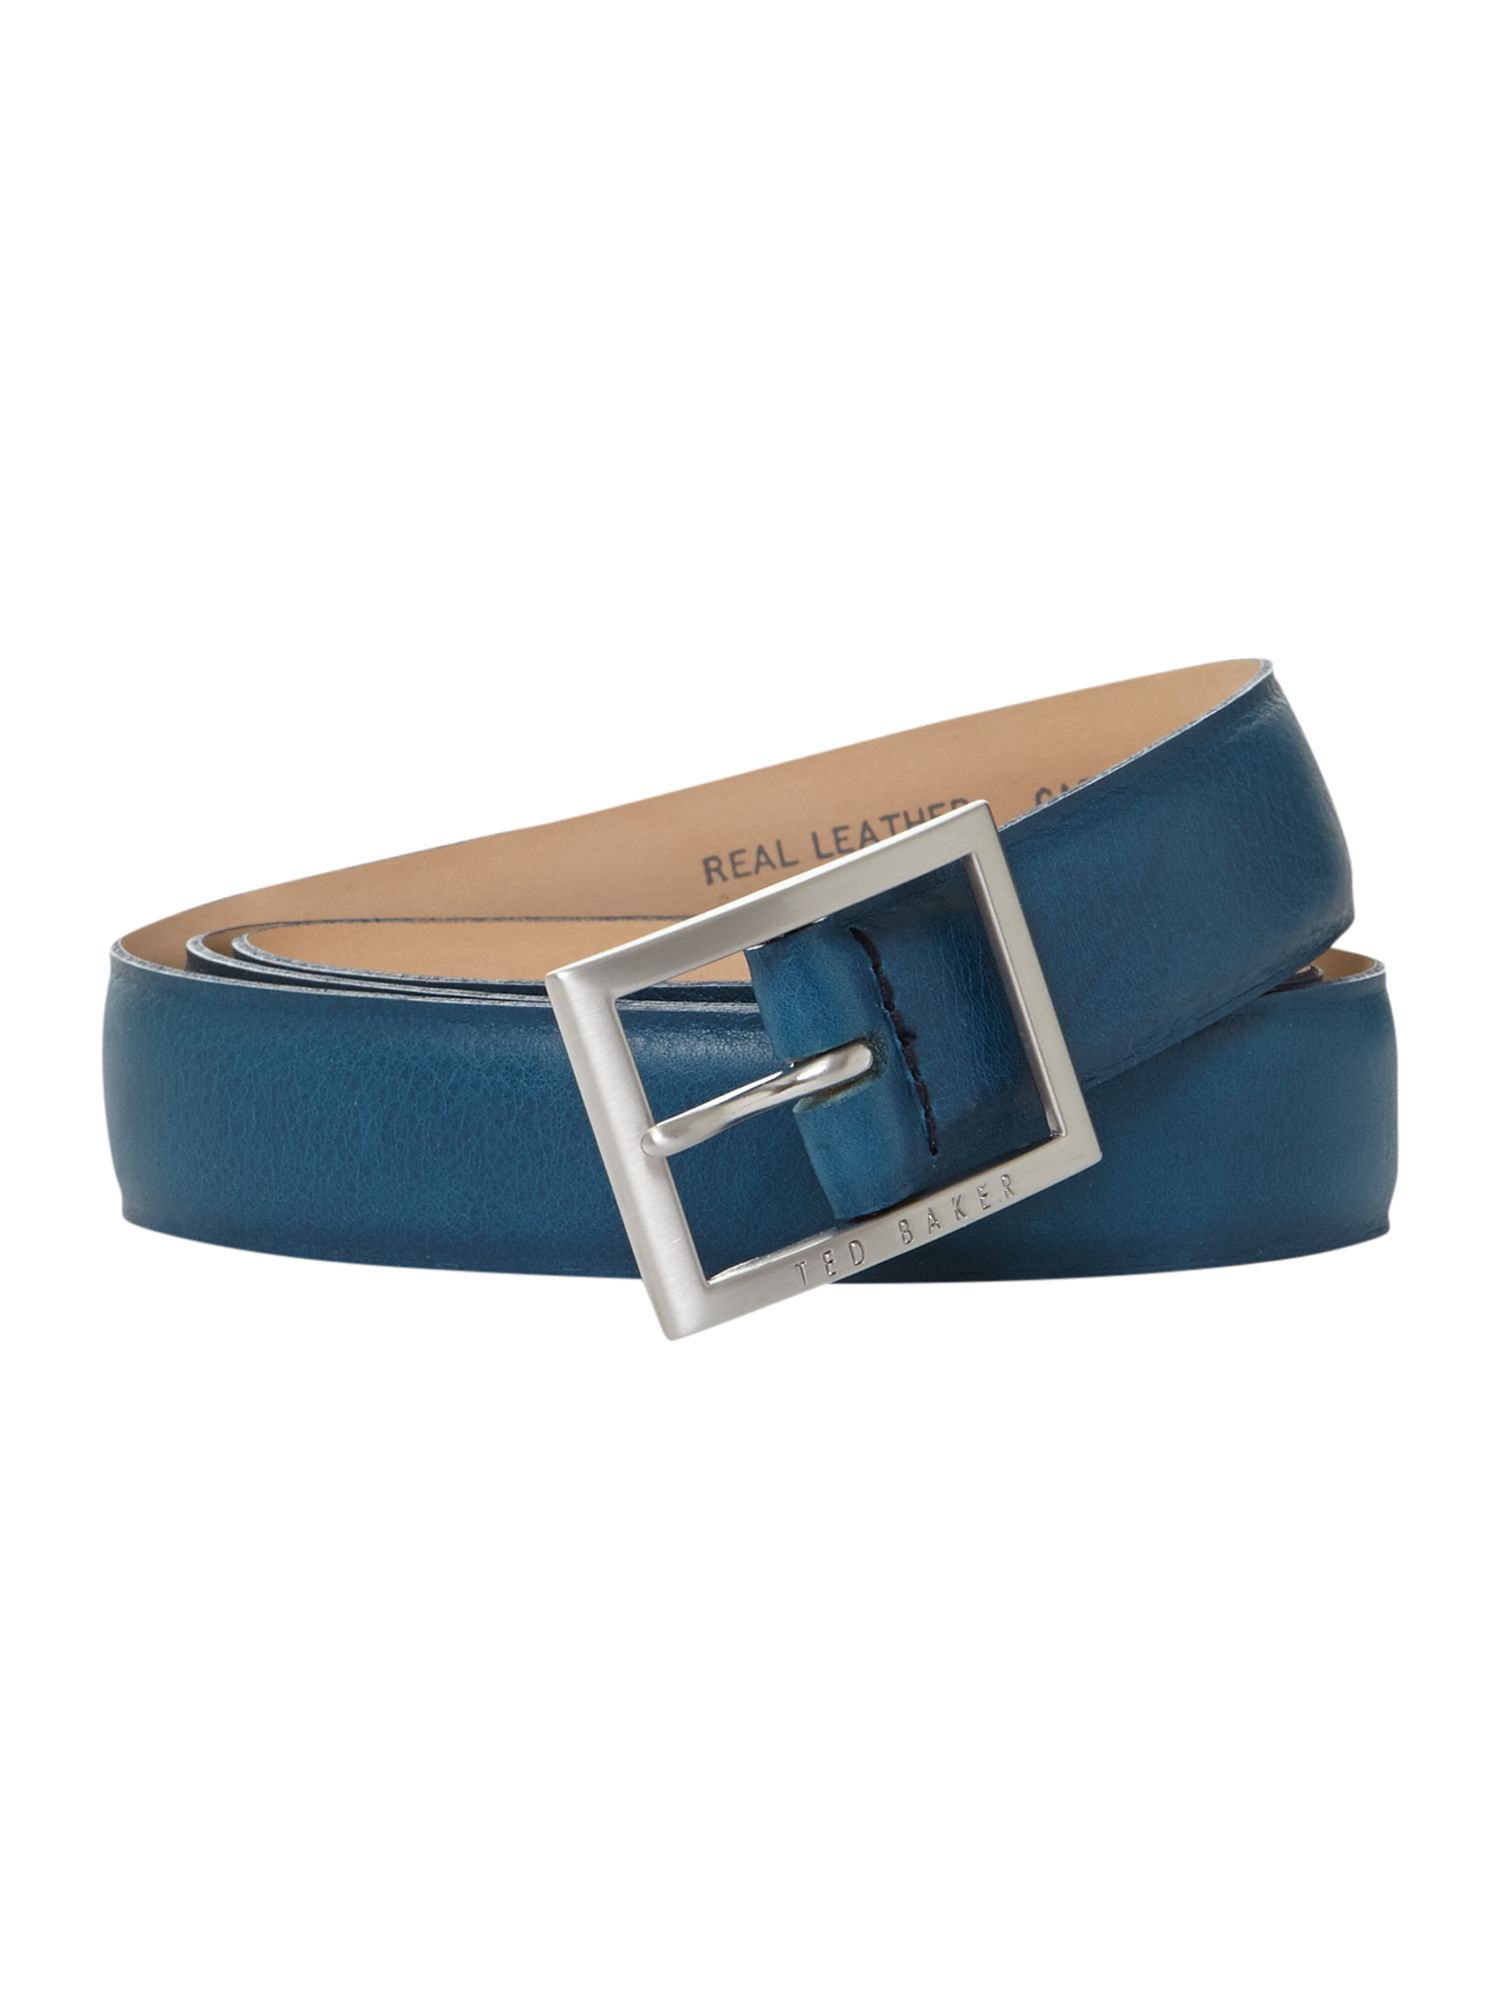 Plain bright coloured belt